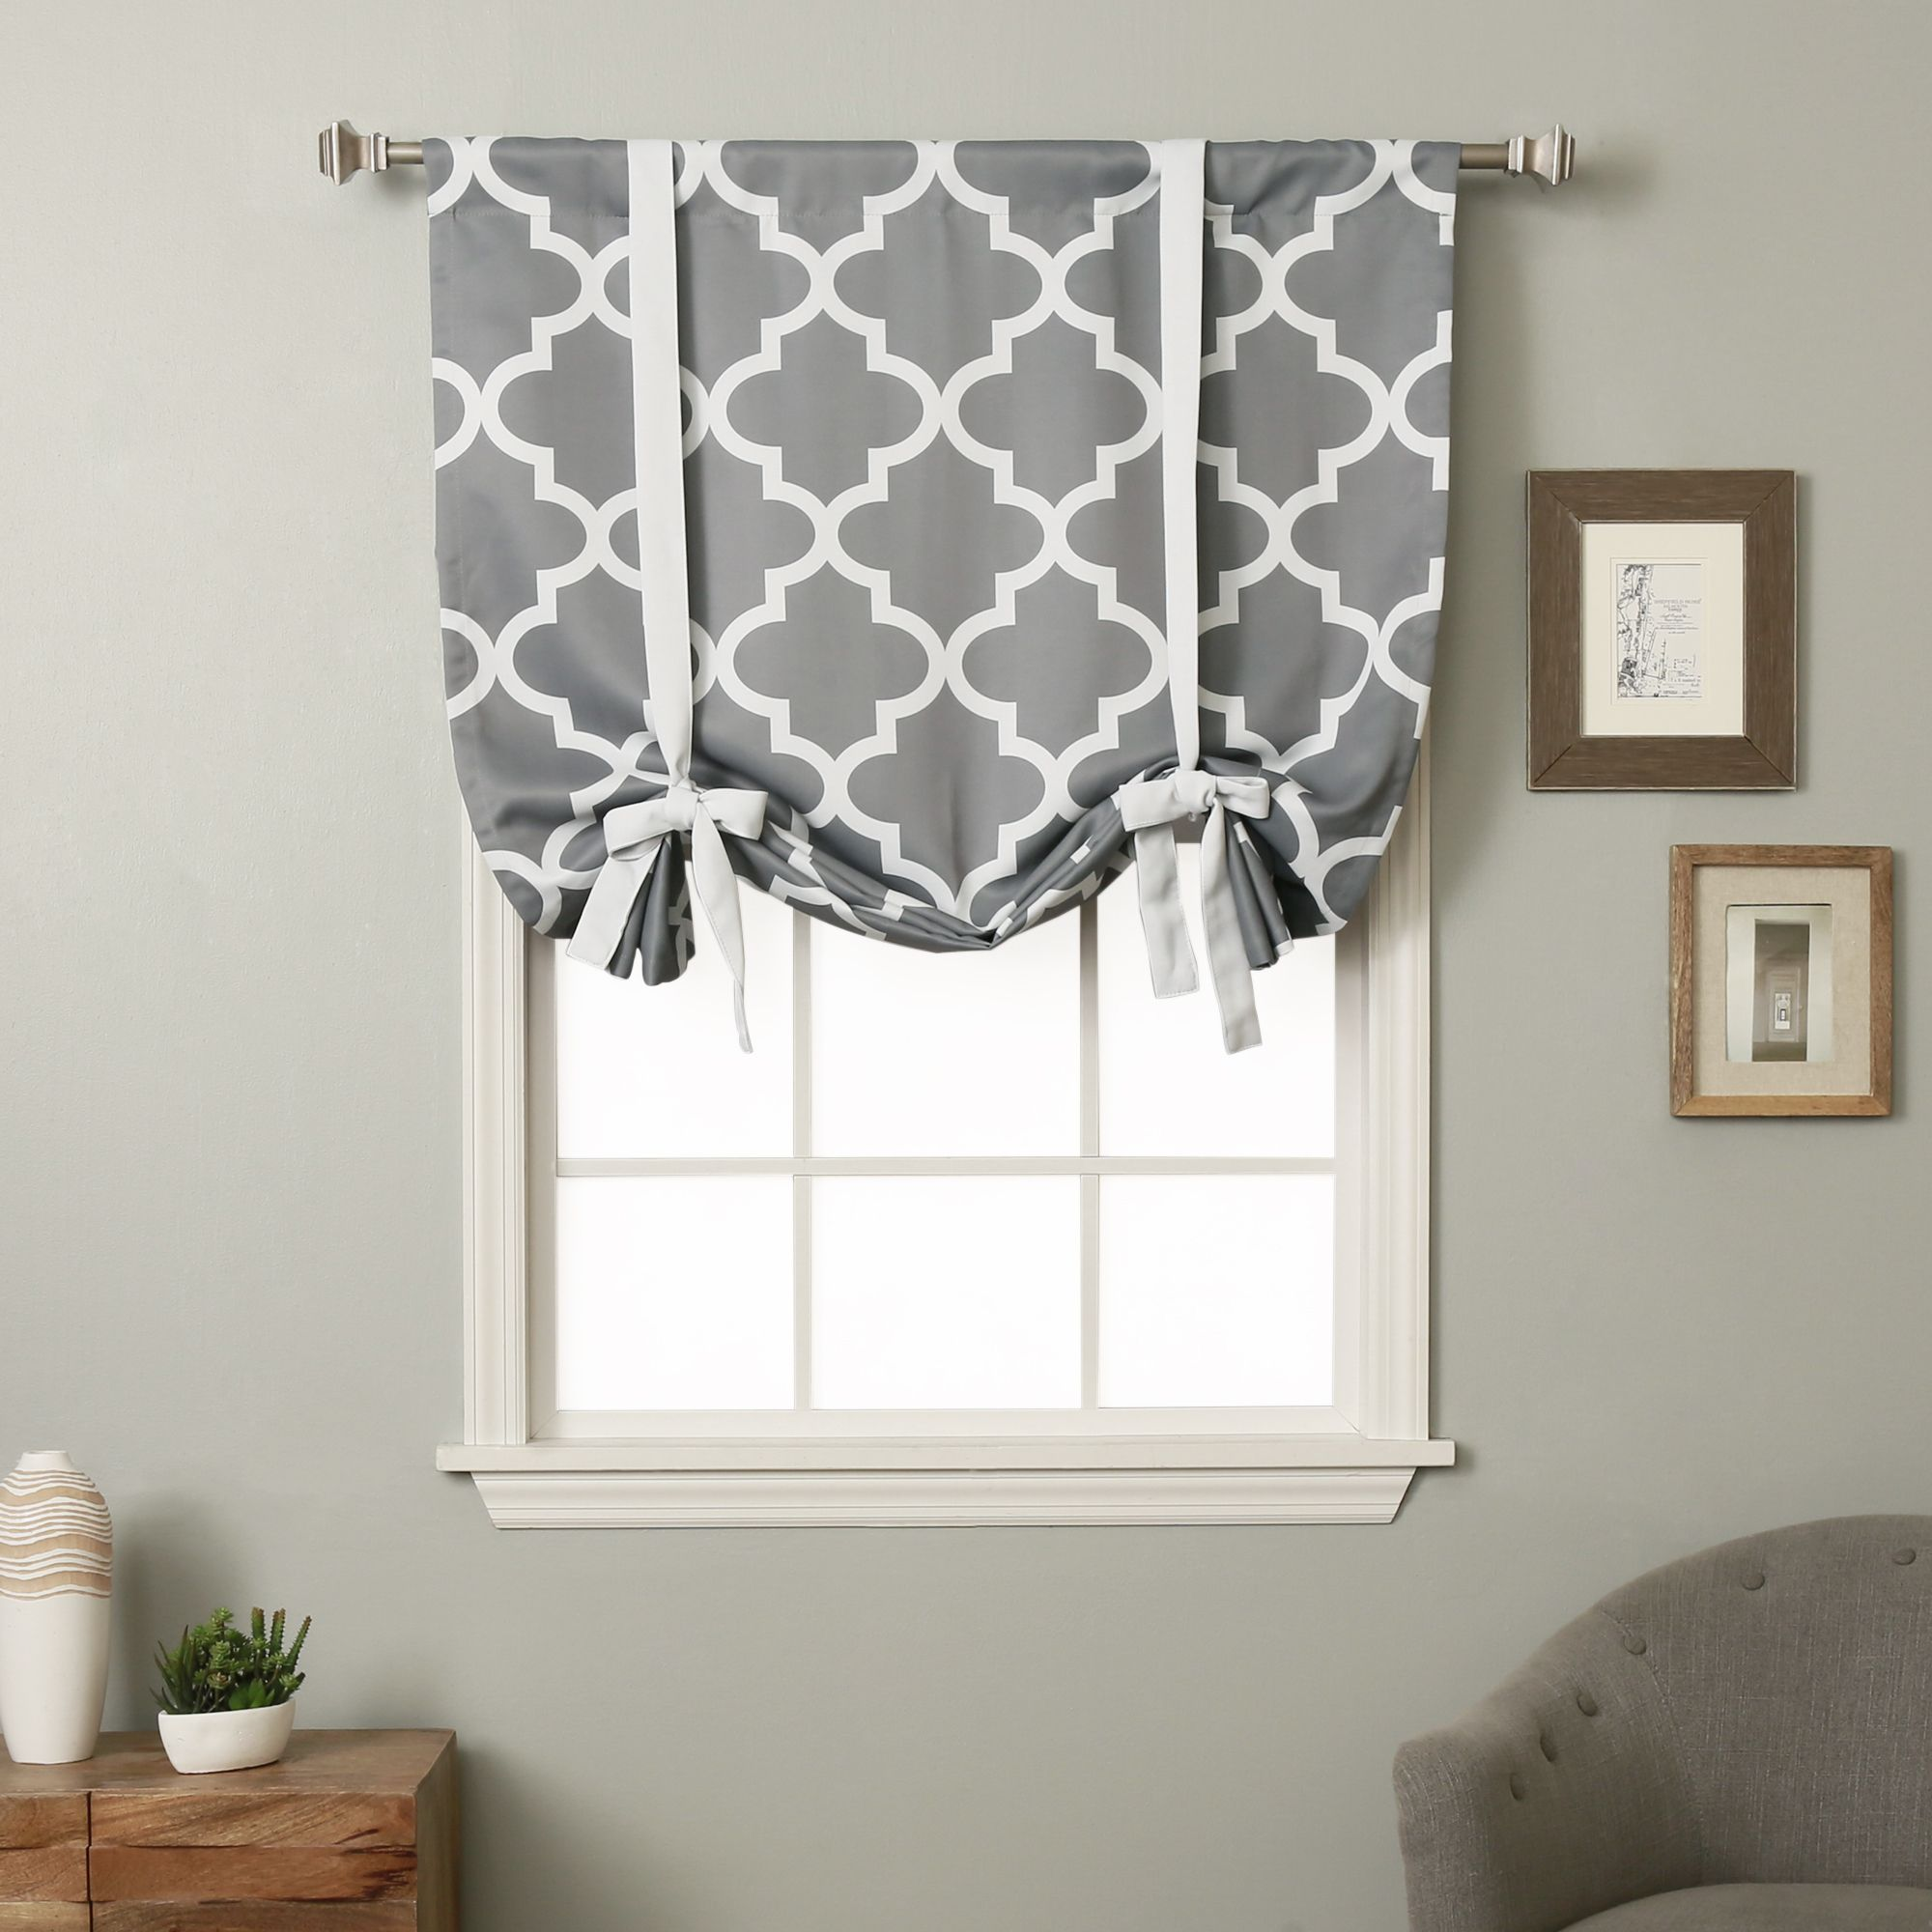 with wide kate scalloped curta waterfall of cotton yzqieie attractive ruffled double white striped full cording breathtaking navy chenille noteworthy size curtains wondrous cool beautiful blue valance top panel valanc valances and bewitch tuck bryce